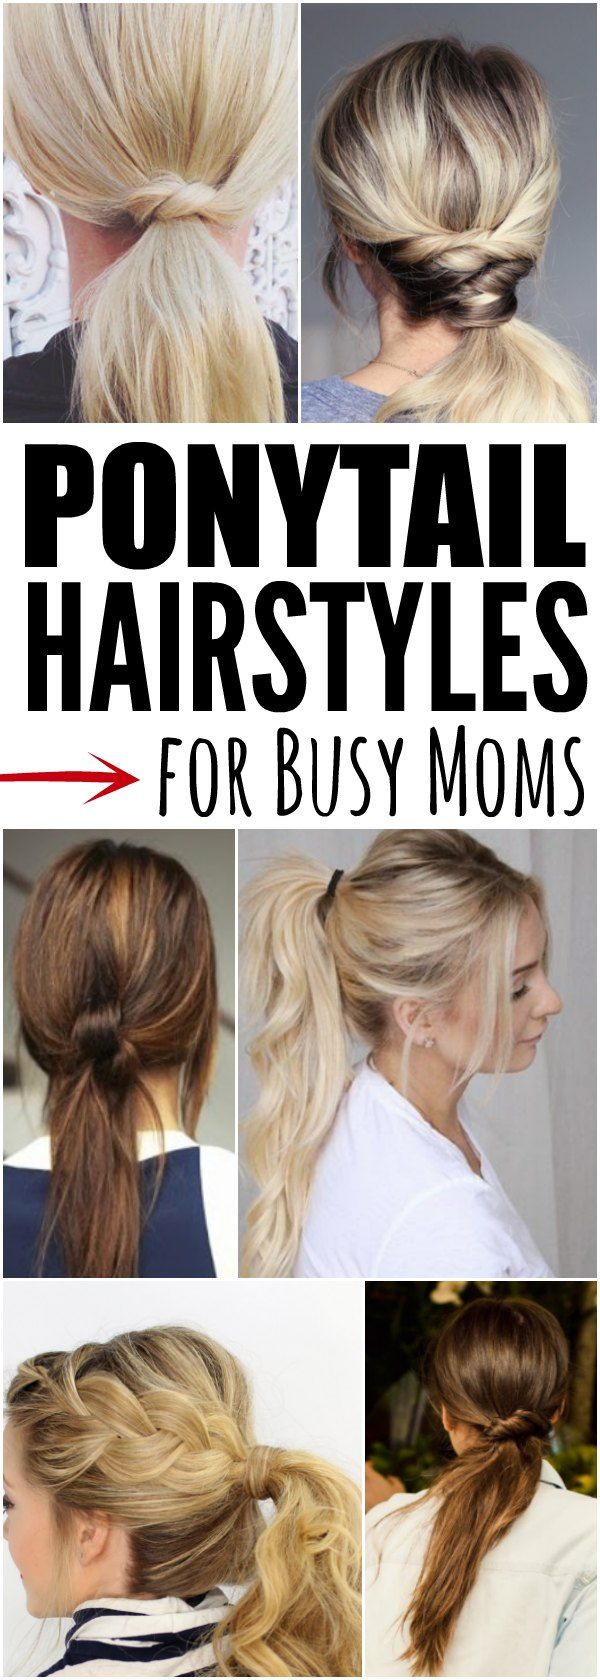 Quick And Easy Ponytail Hairstyles For Busy Moms Ponytail Hairstyles Ponytail Hairstyles Easy Hair Styles Easy Mom Hairstyles